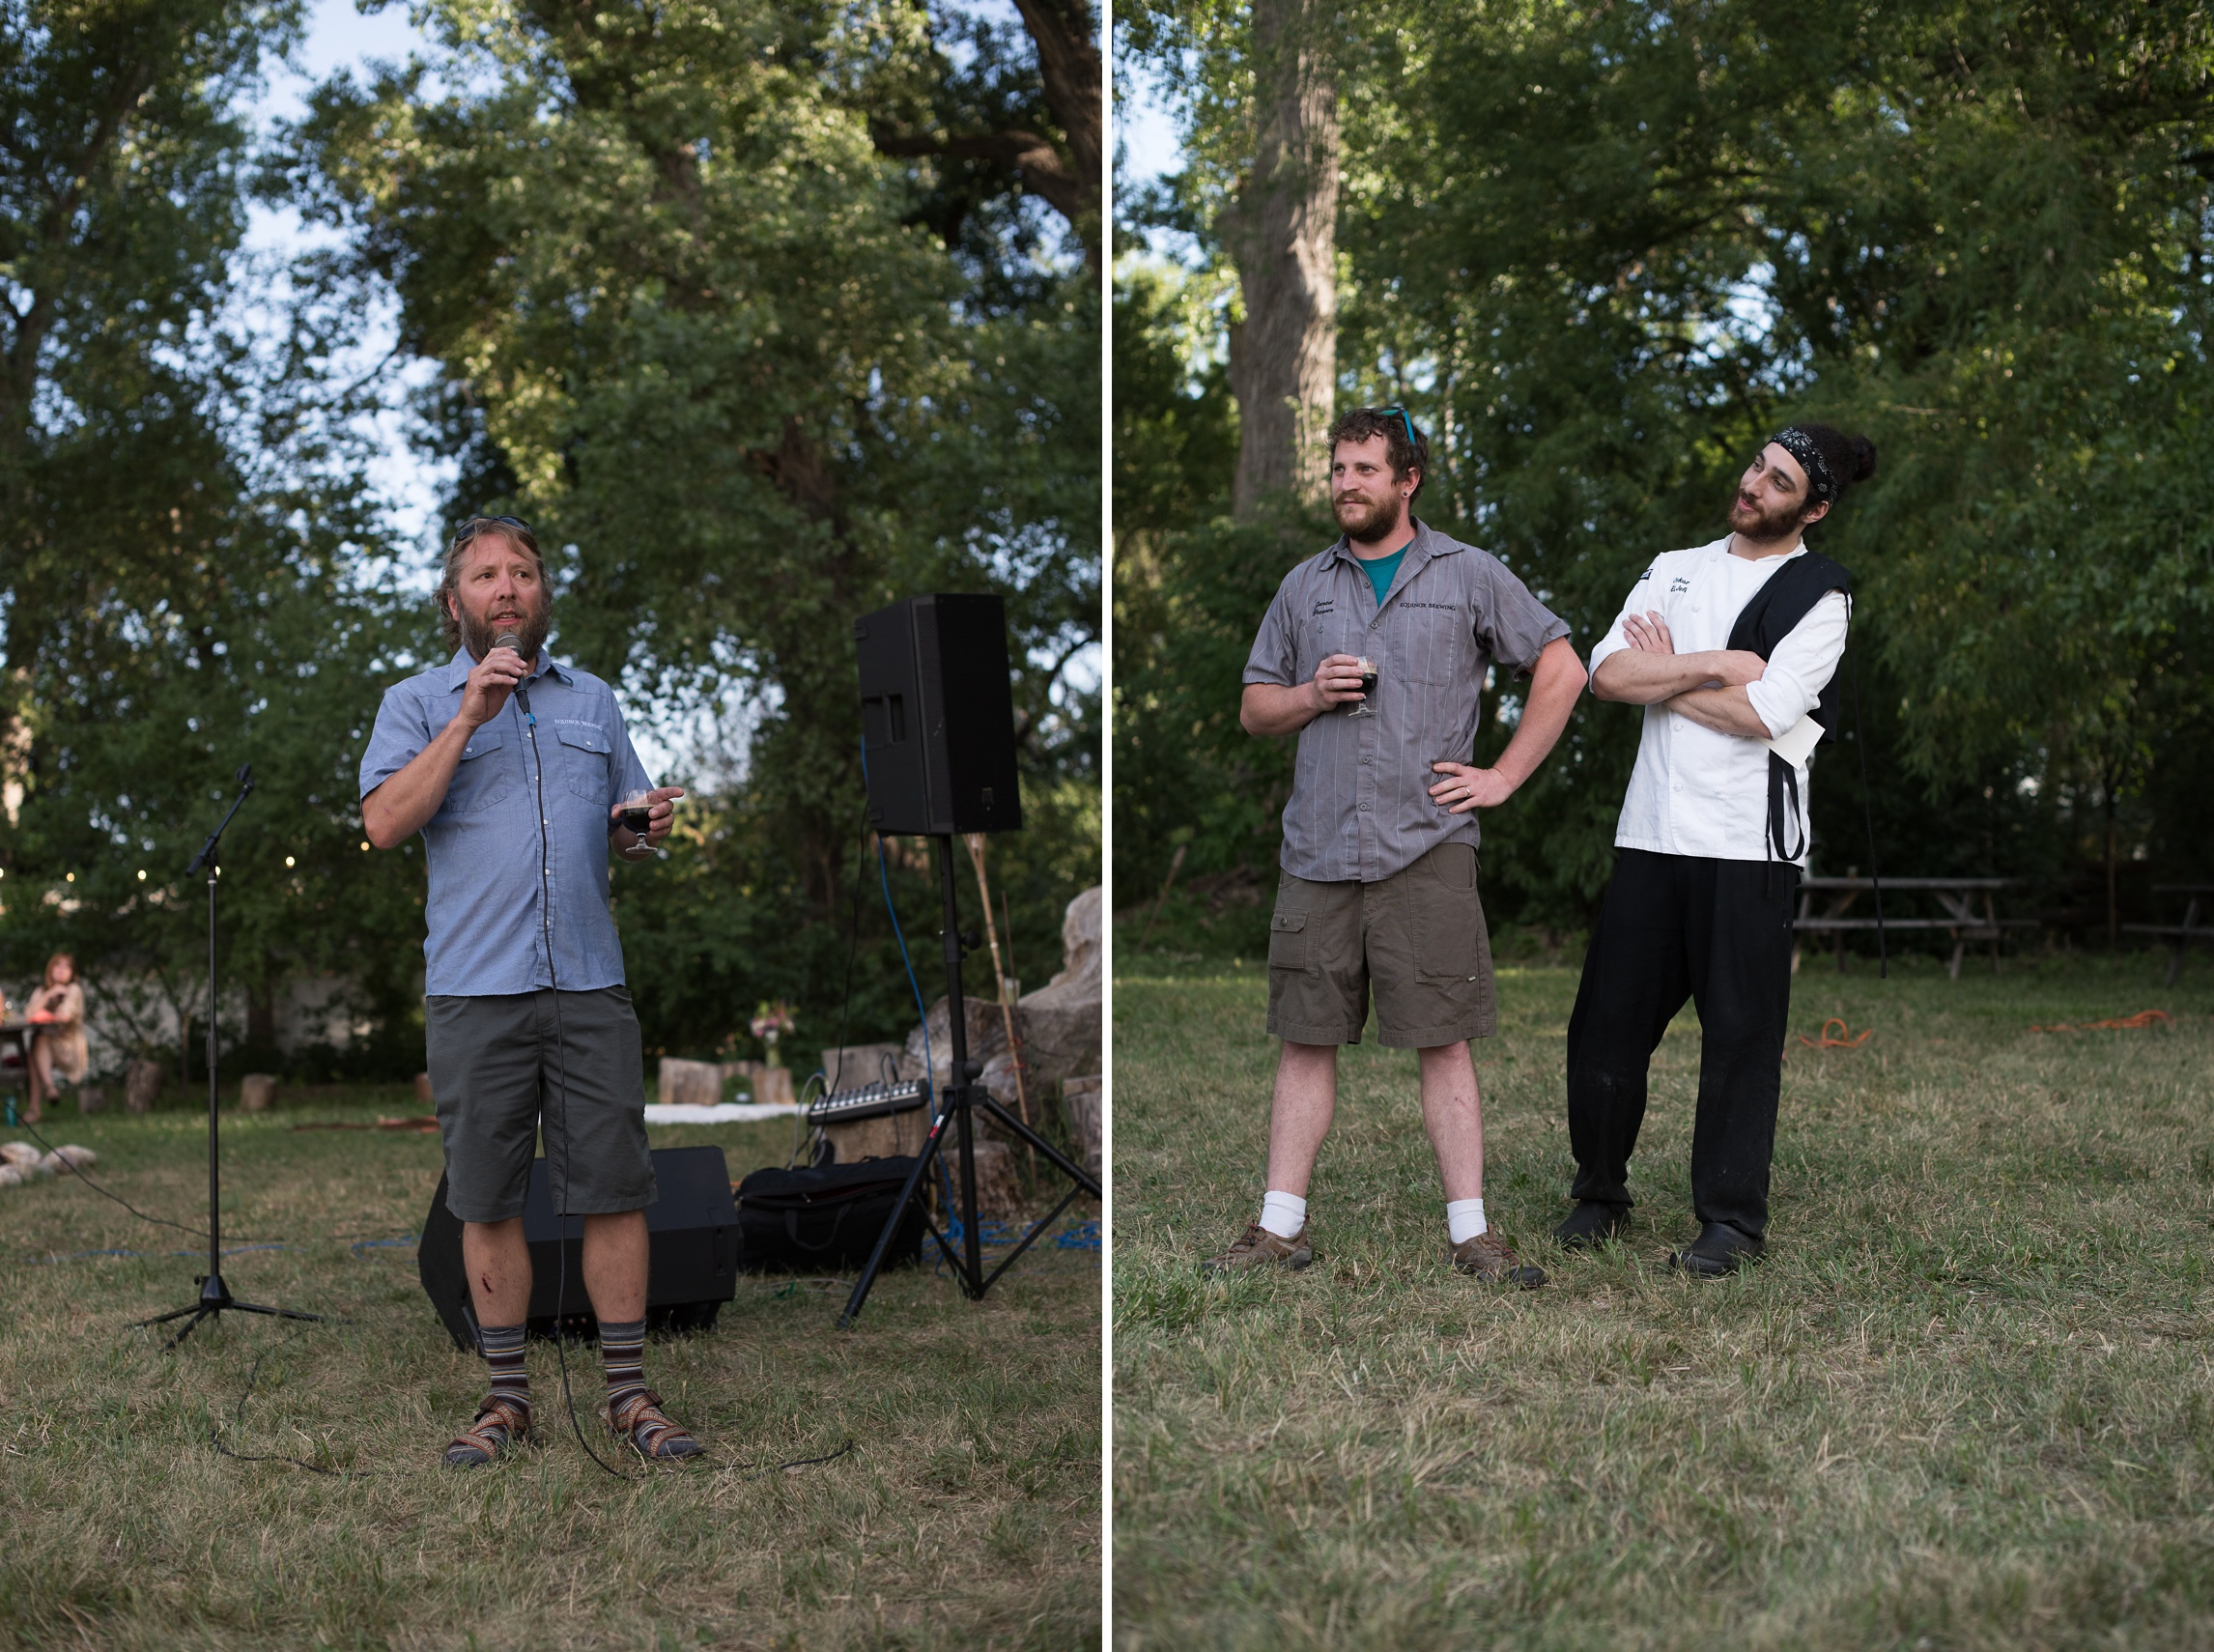 Colin from Equinox Brewing talks about his awesome beer at the Fortified Heart of Summer Farm Dinner at Happy Heart Farm in Fort Collins, Colorado. Event photography by Sonja Salzburg of Sonja K Photography.